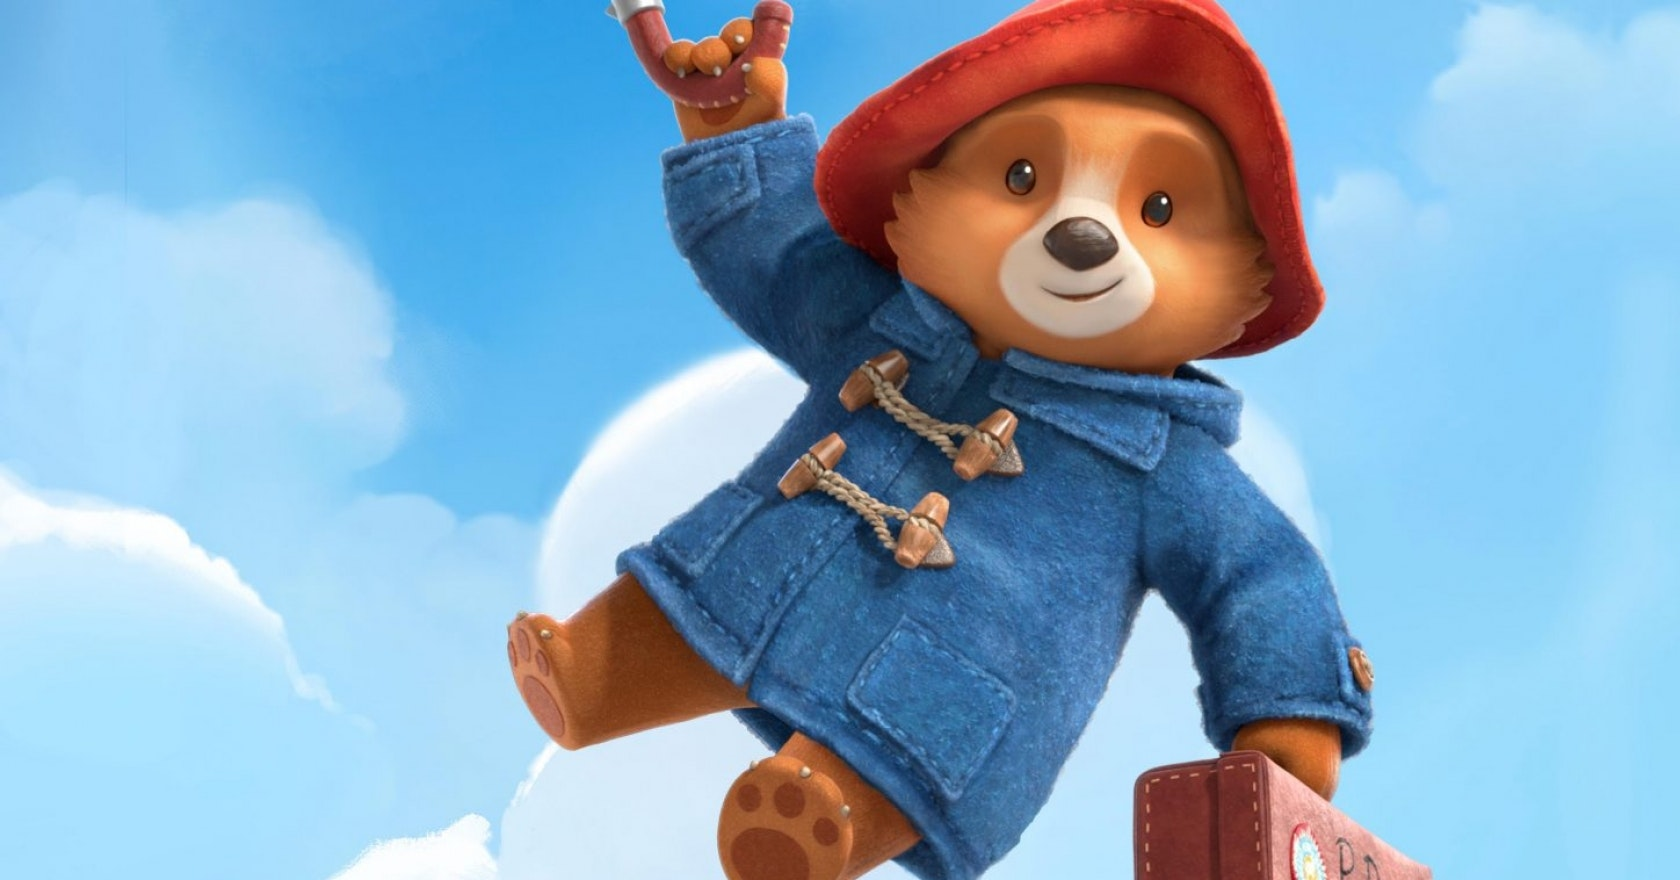 It's official: Paddington Bear is getting his own TV show